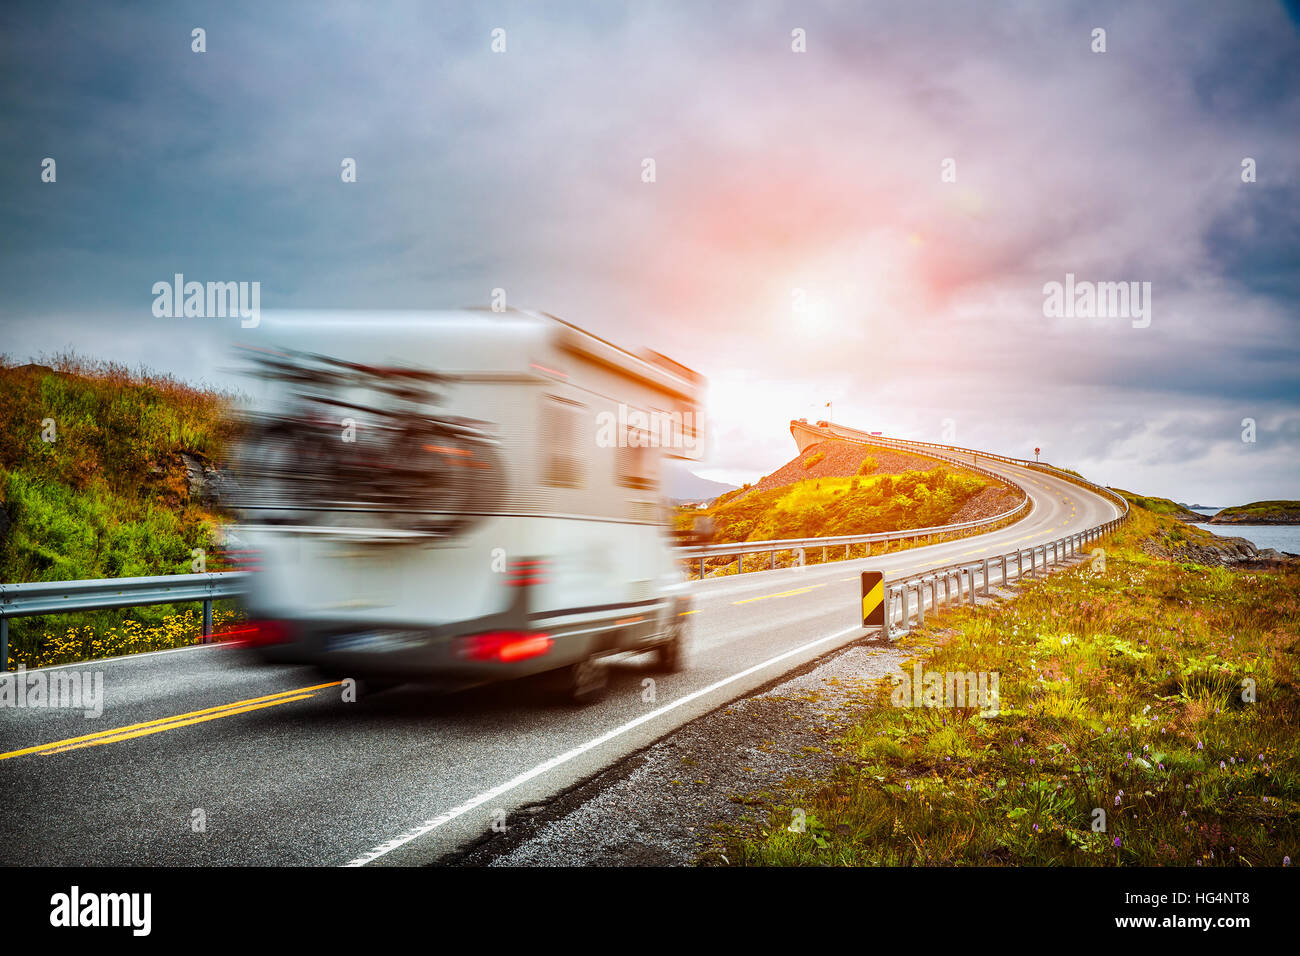 Caravan car travels on the highway. Caravan Car in motion blur. Norway. Atlantic Ocean Road or the Atlantic Road - Stock Image